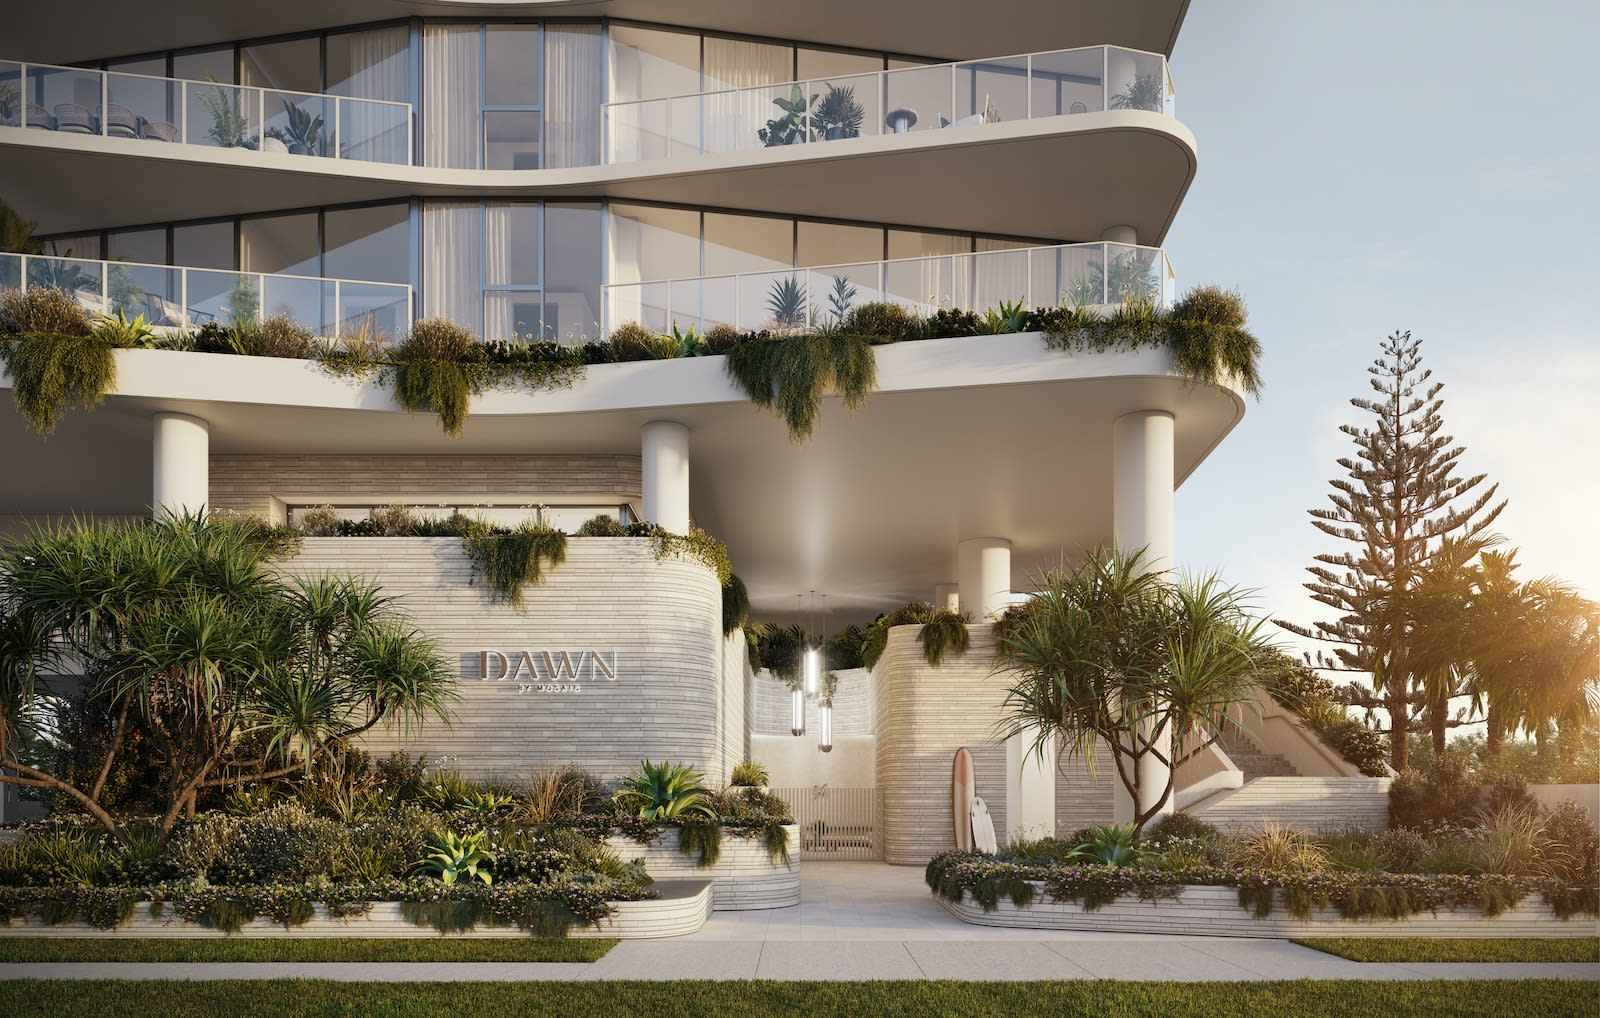 Mosaic Property Group achieve near sell-out of Mermaid Beach development Dawn in just two weeks